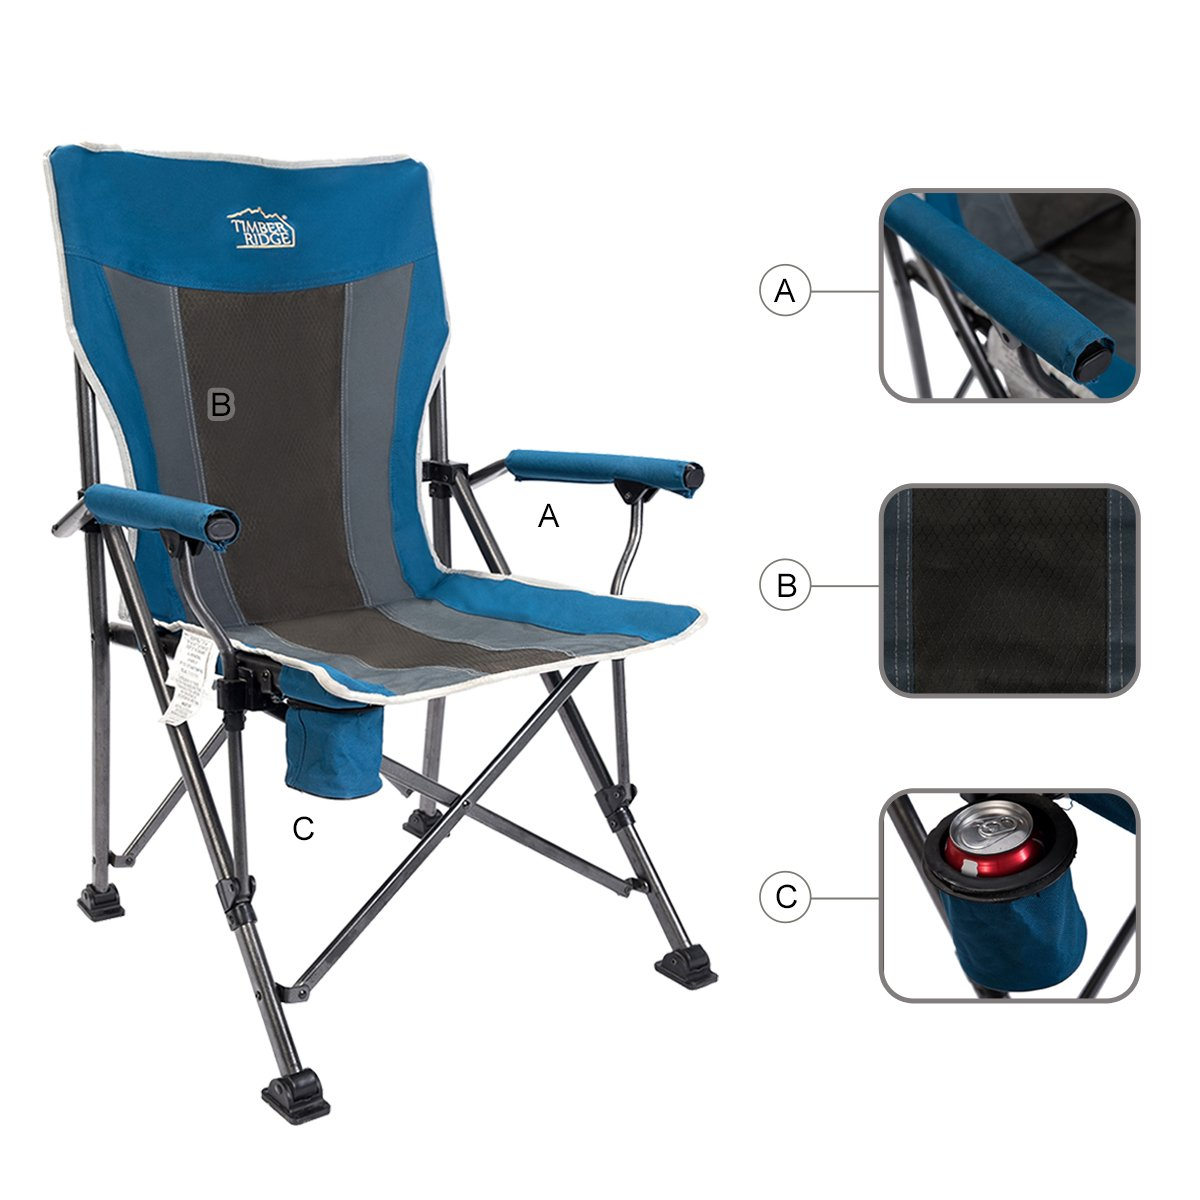 Camping Chairs For Tall People People Living Tall